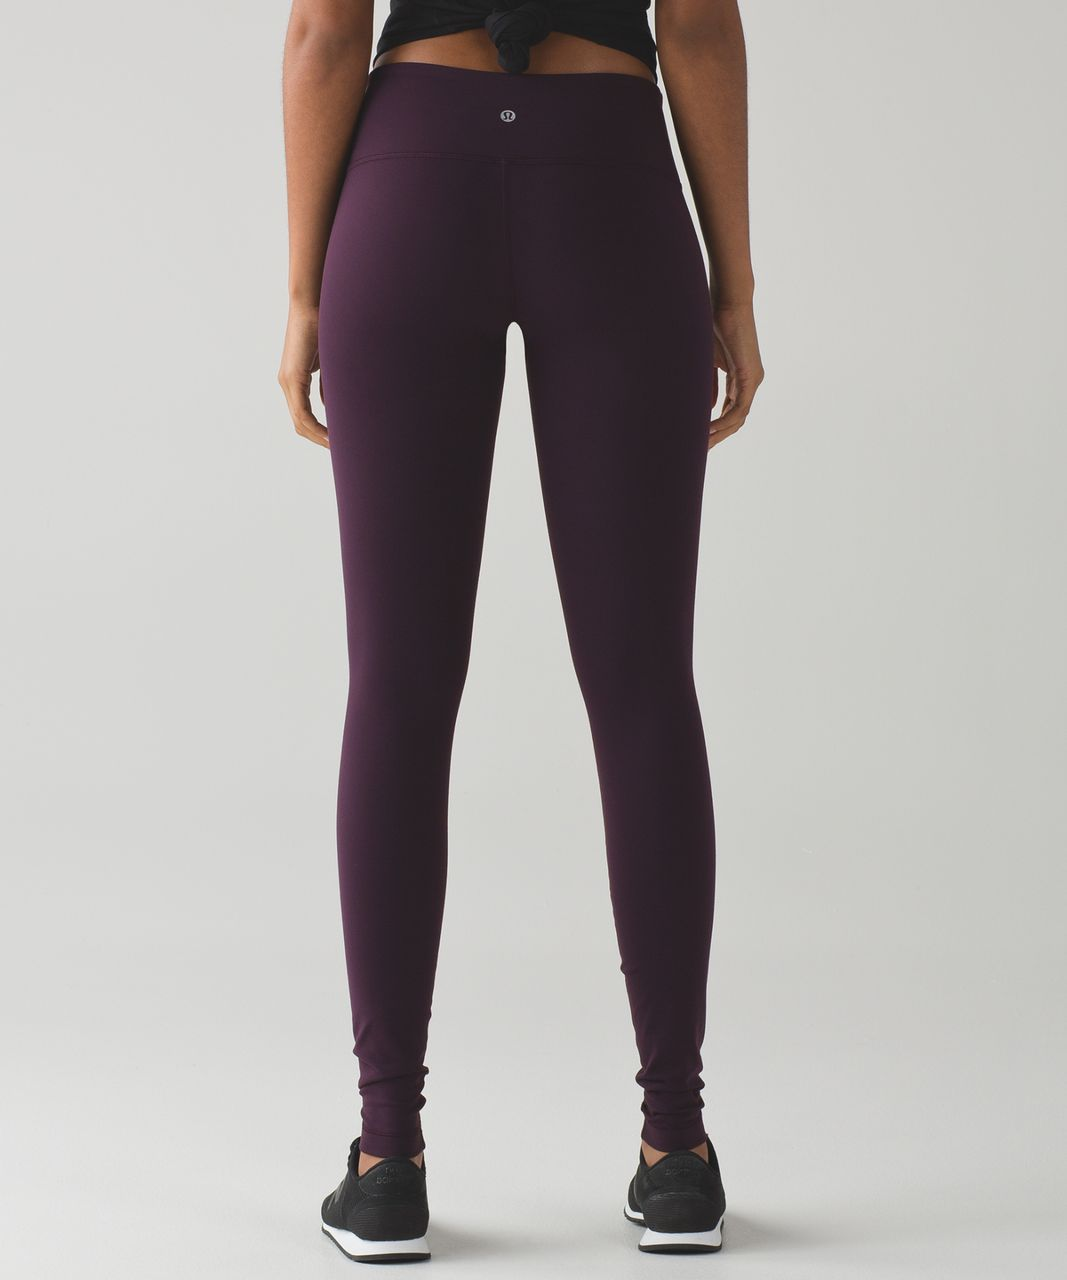 a0ae8a0ecd1293 Lululemon Wunder Under Pant III (Full-On Luon) - Black Cherry - lulu ...